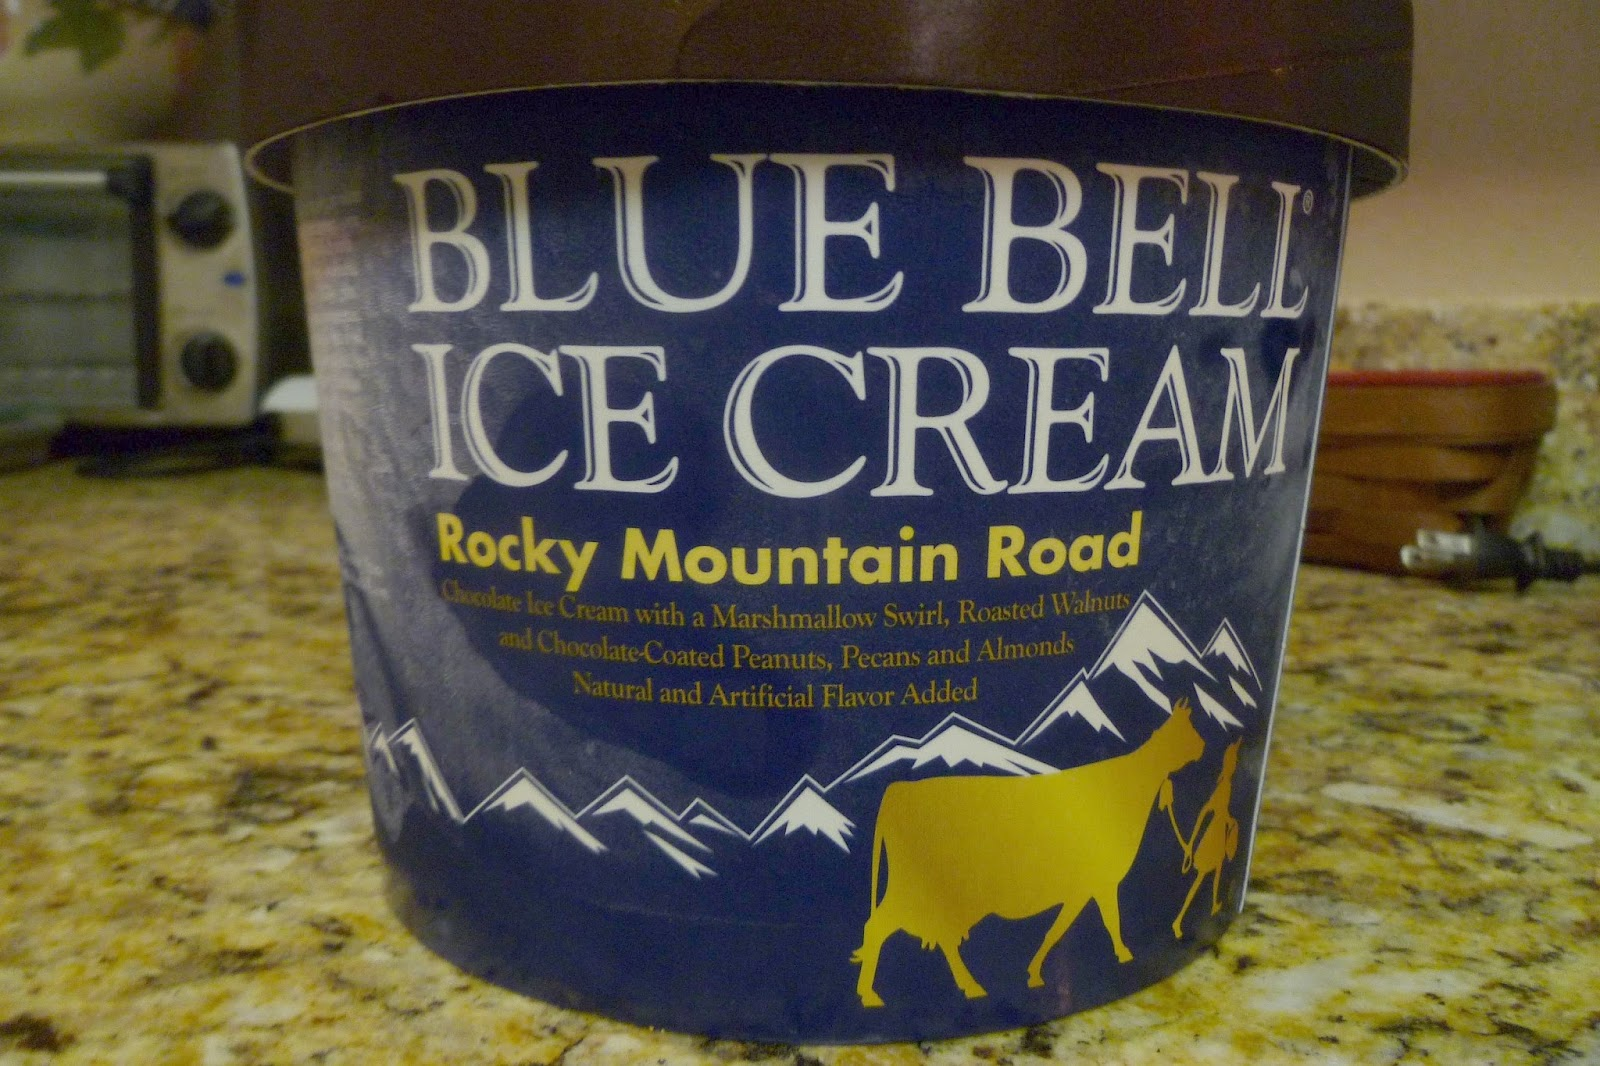 food and ice cream recipes READER REVIEW Steves Review of Blue